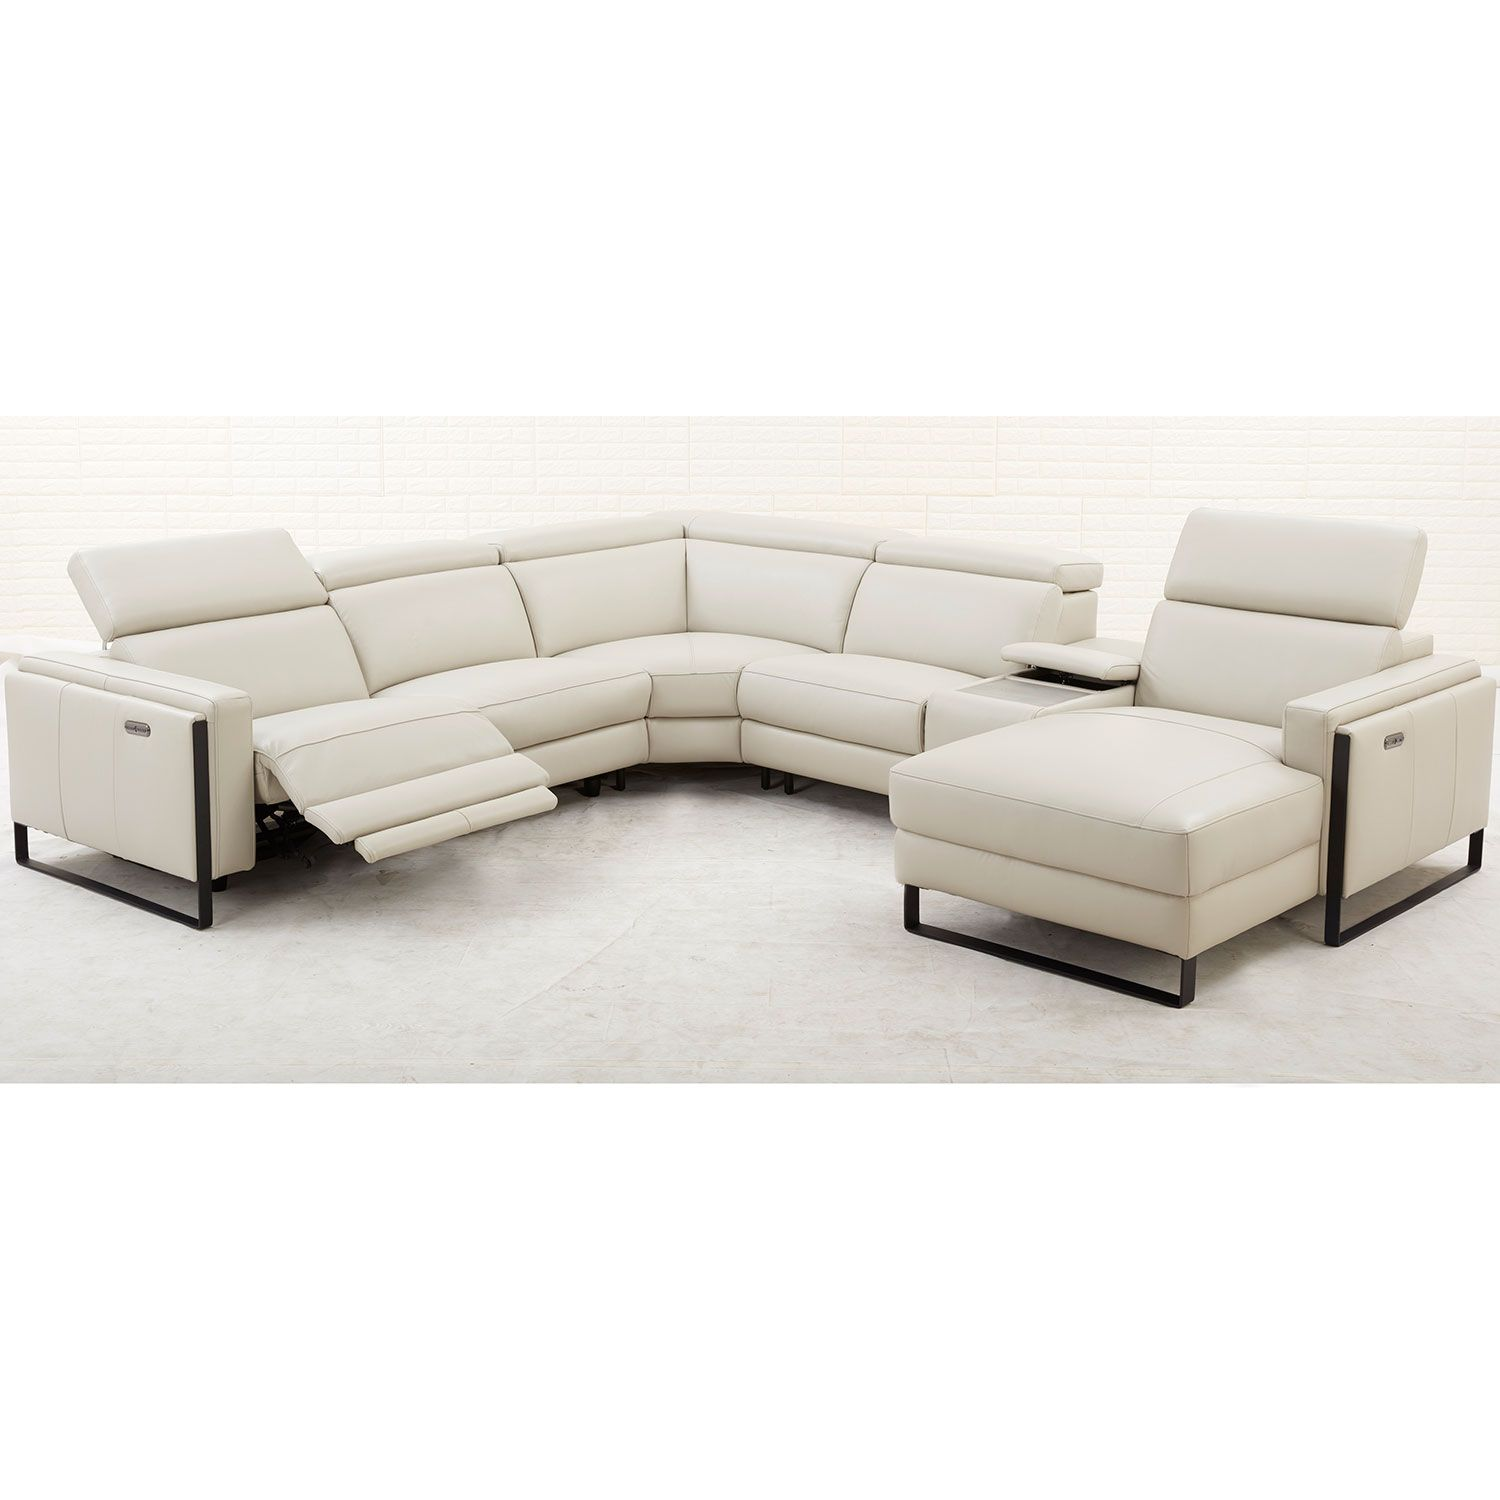 Southern Motion 419 05p 976 15 Sectional Starstruck Power Headrest Reclining Sectional Sofa Off White Top Grain Leather In 2020 Reclining Sectional Sectional Sofa With Recliner Southern Motion